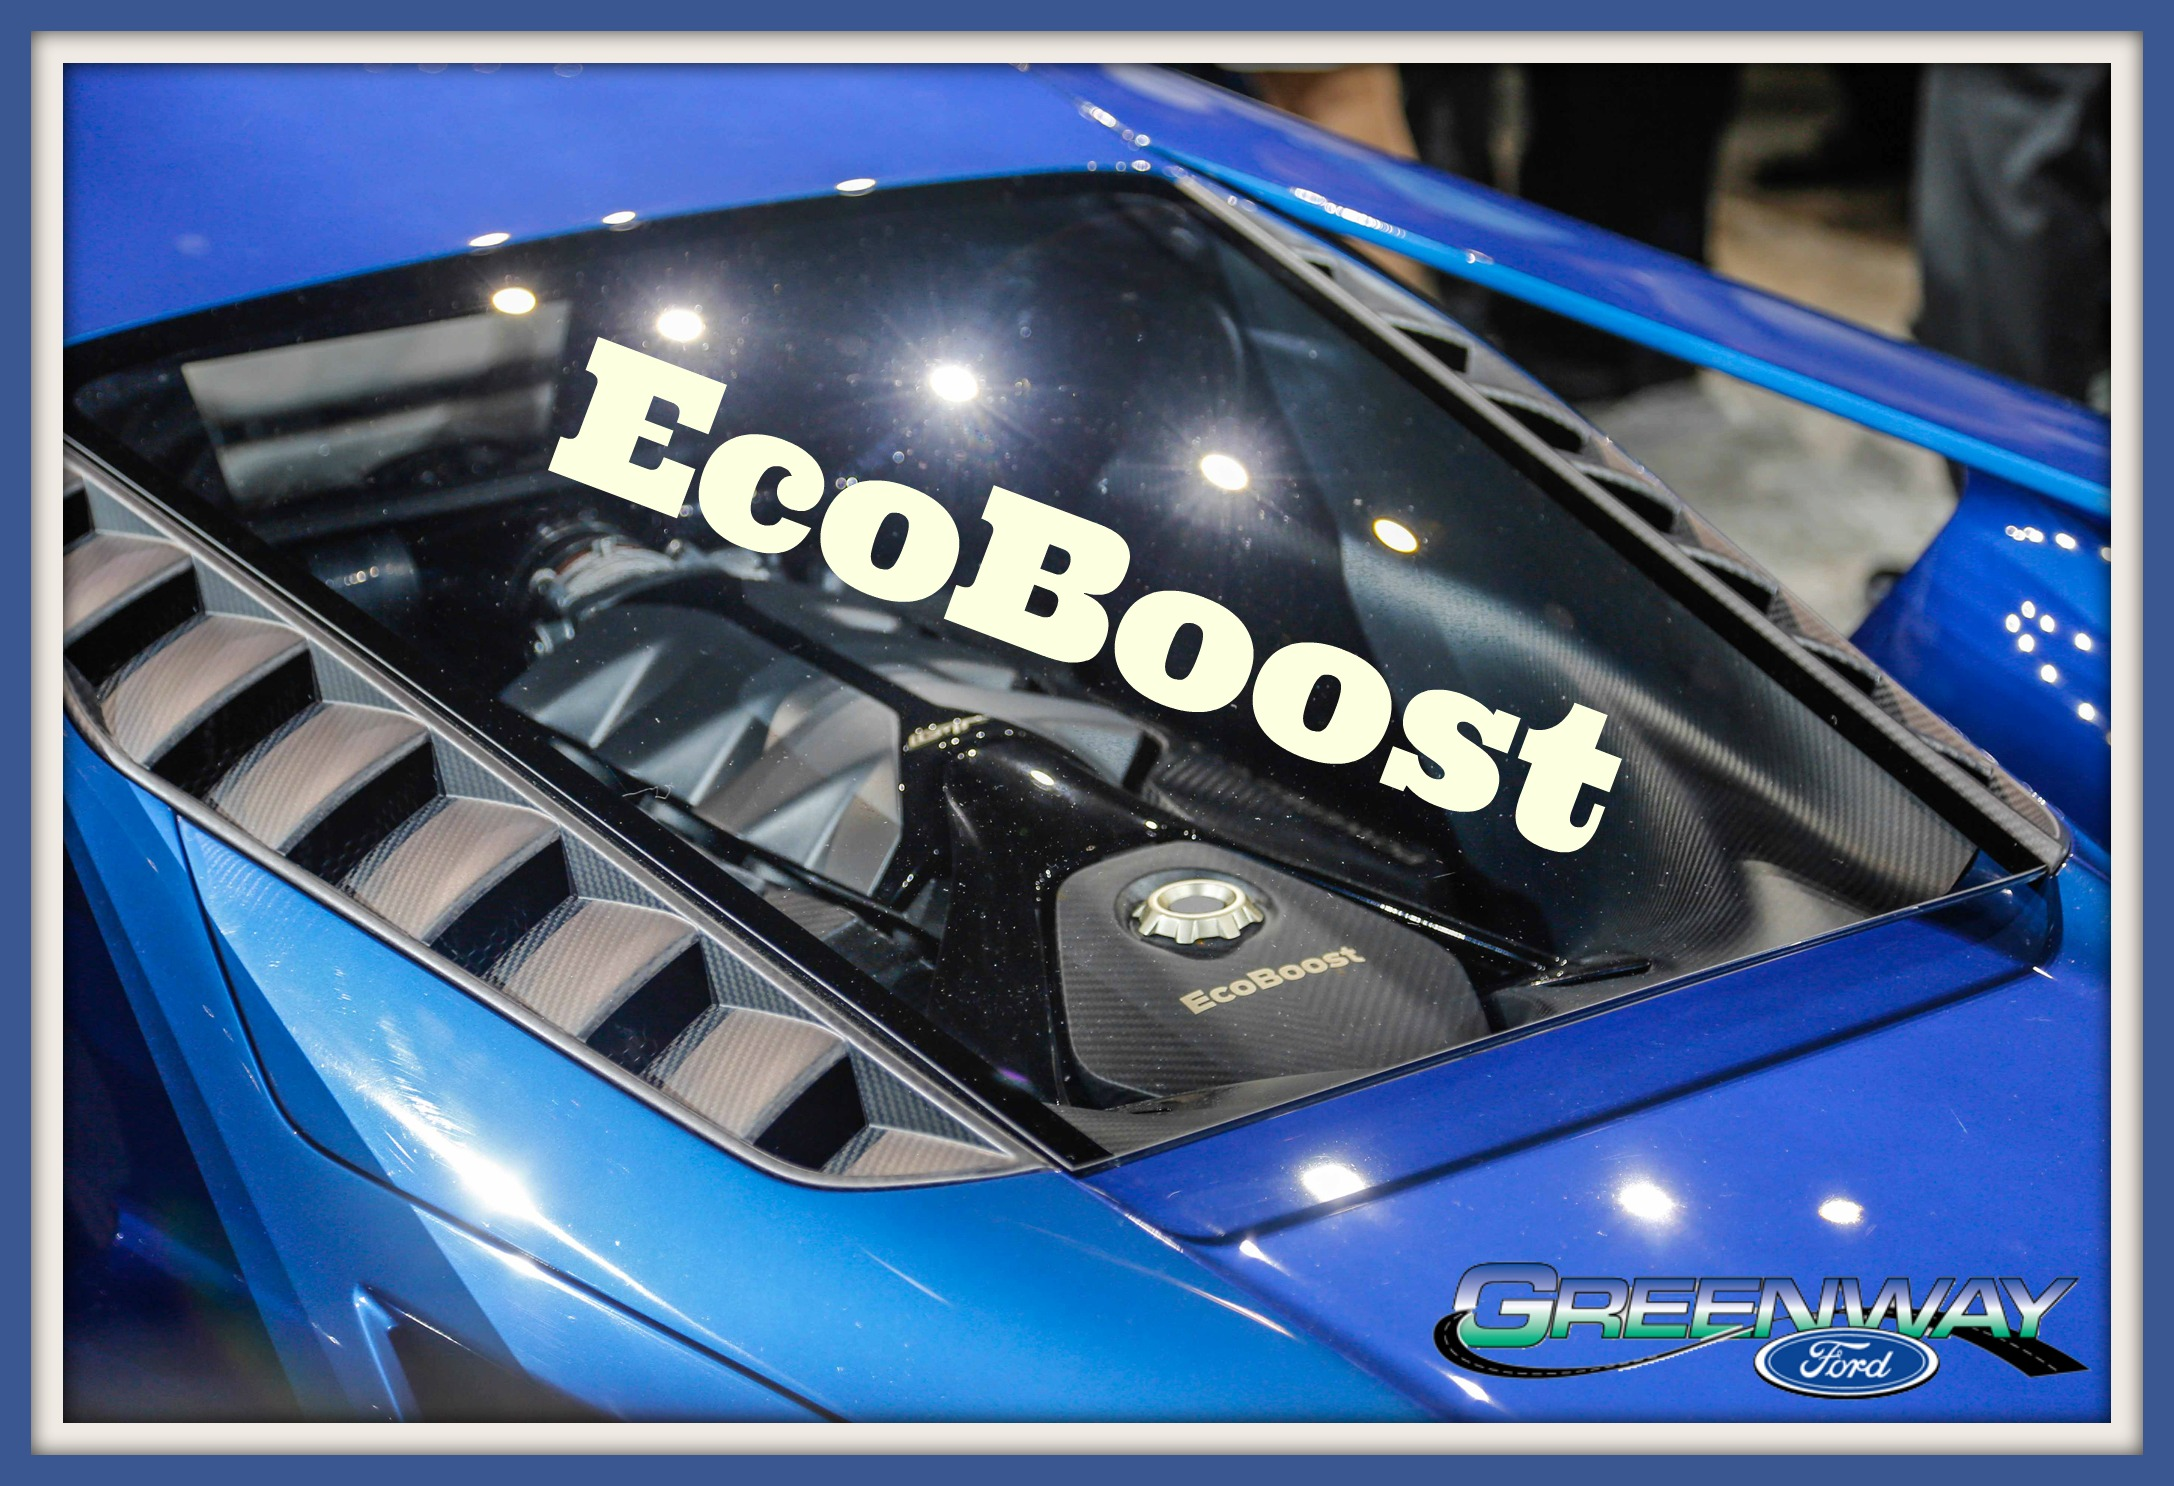 Ford GT has an Ecoboost engine